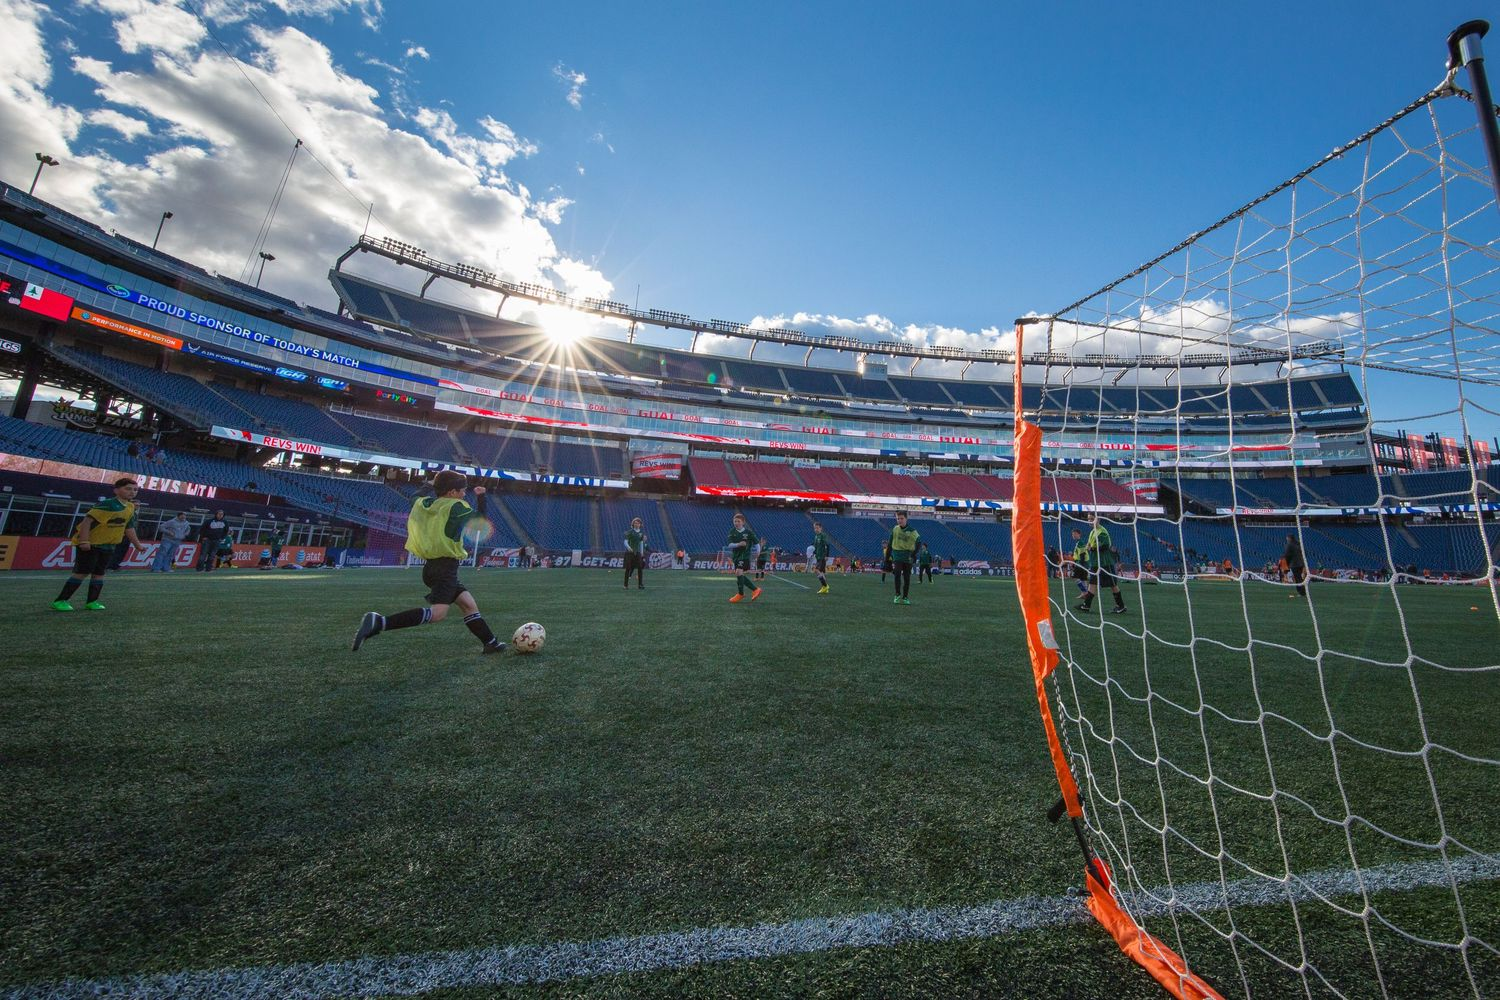 Gillette Stadium Kids Soccer sunset